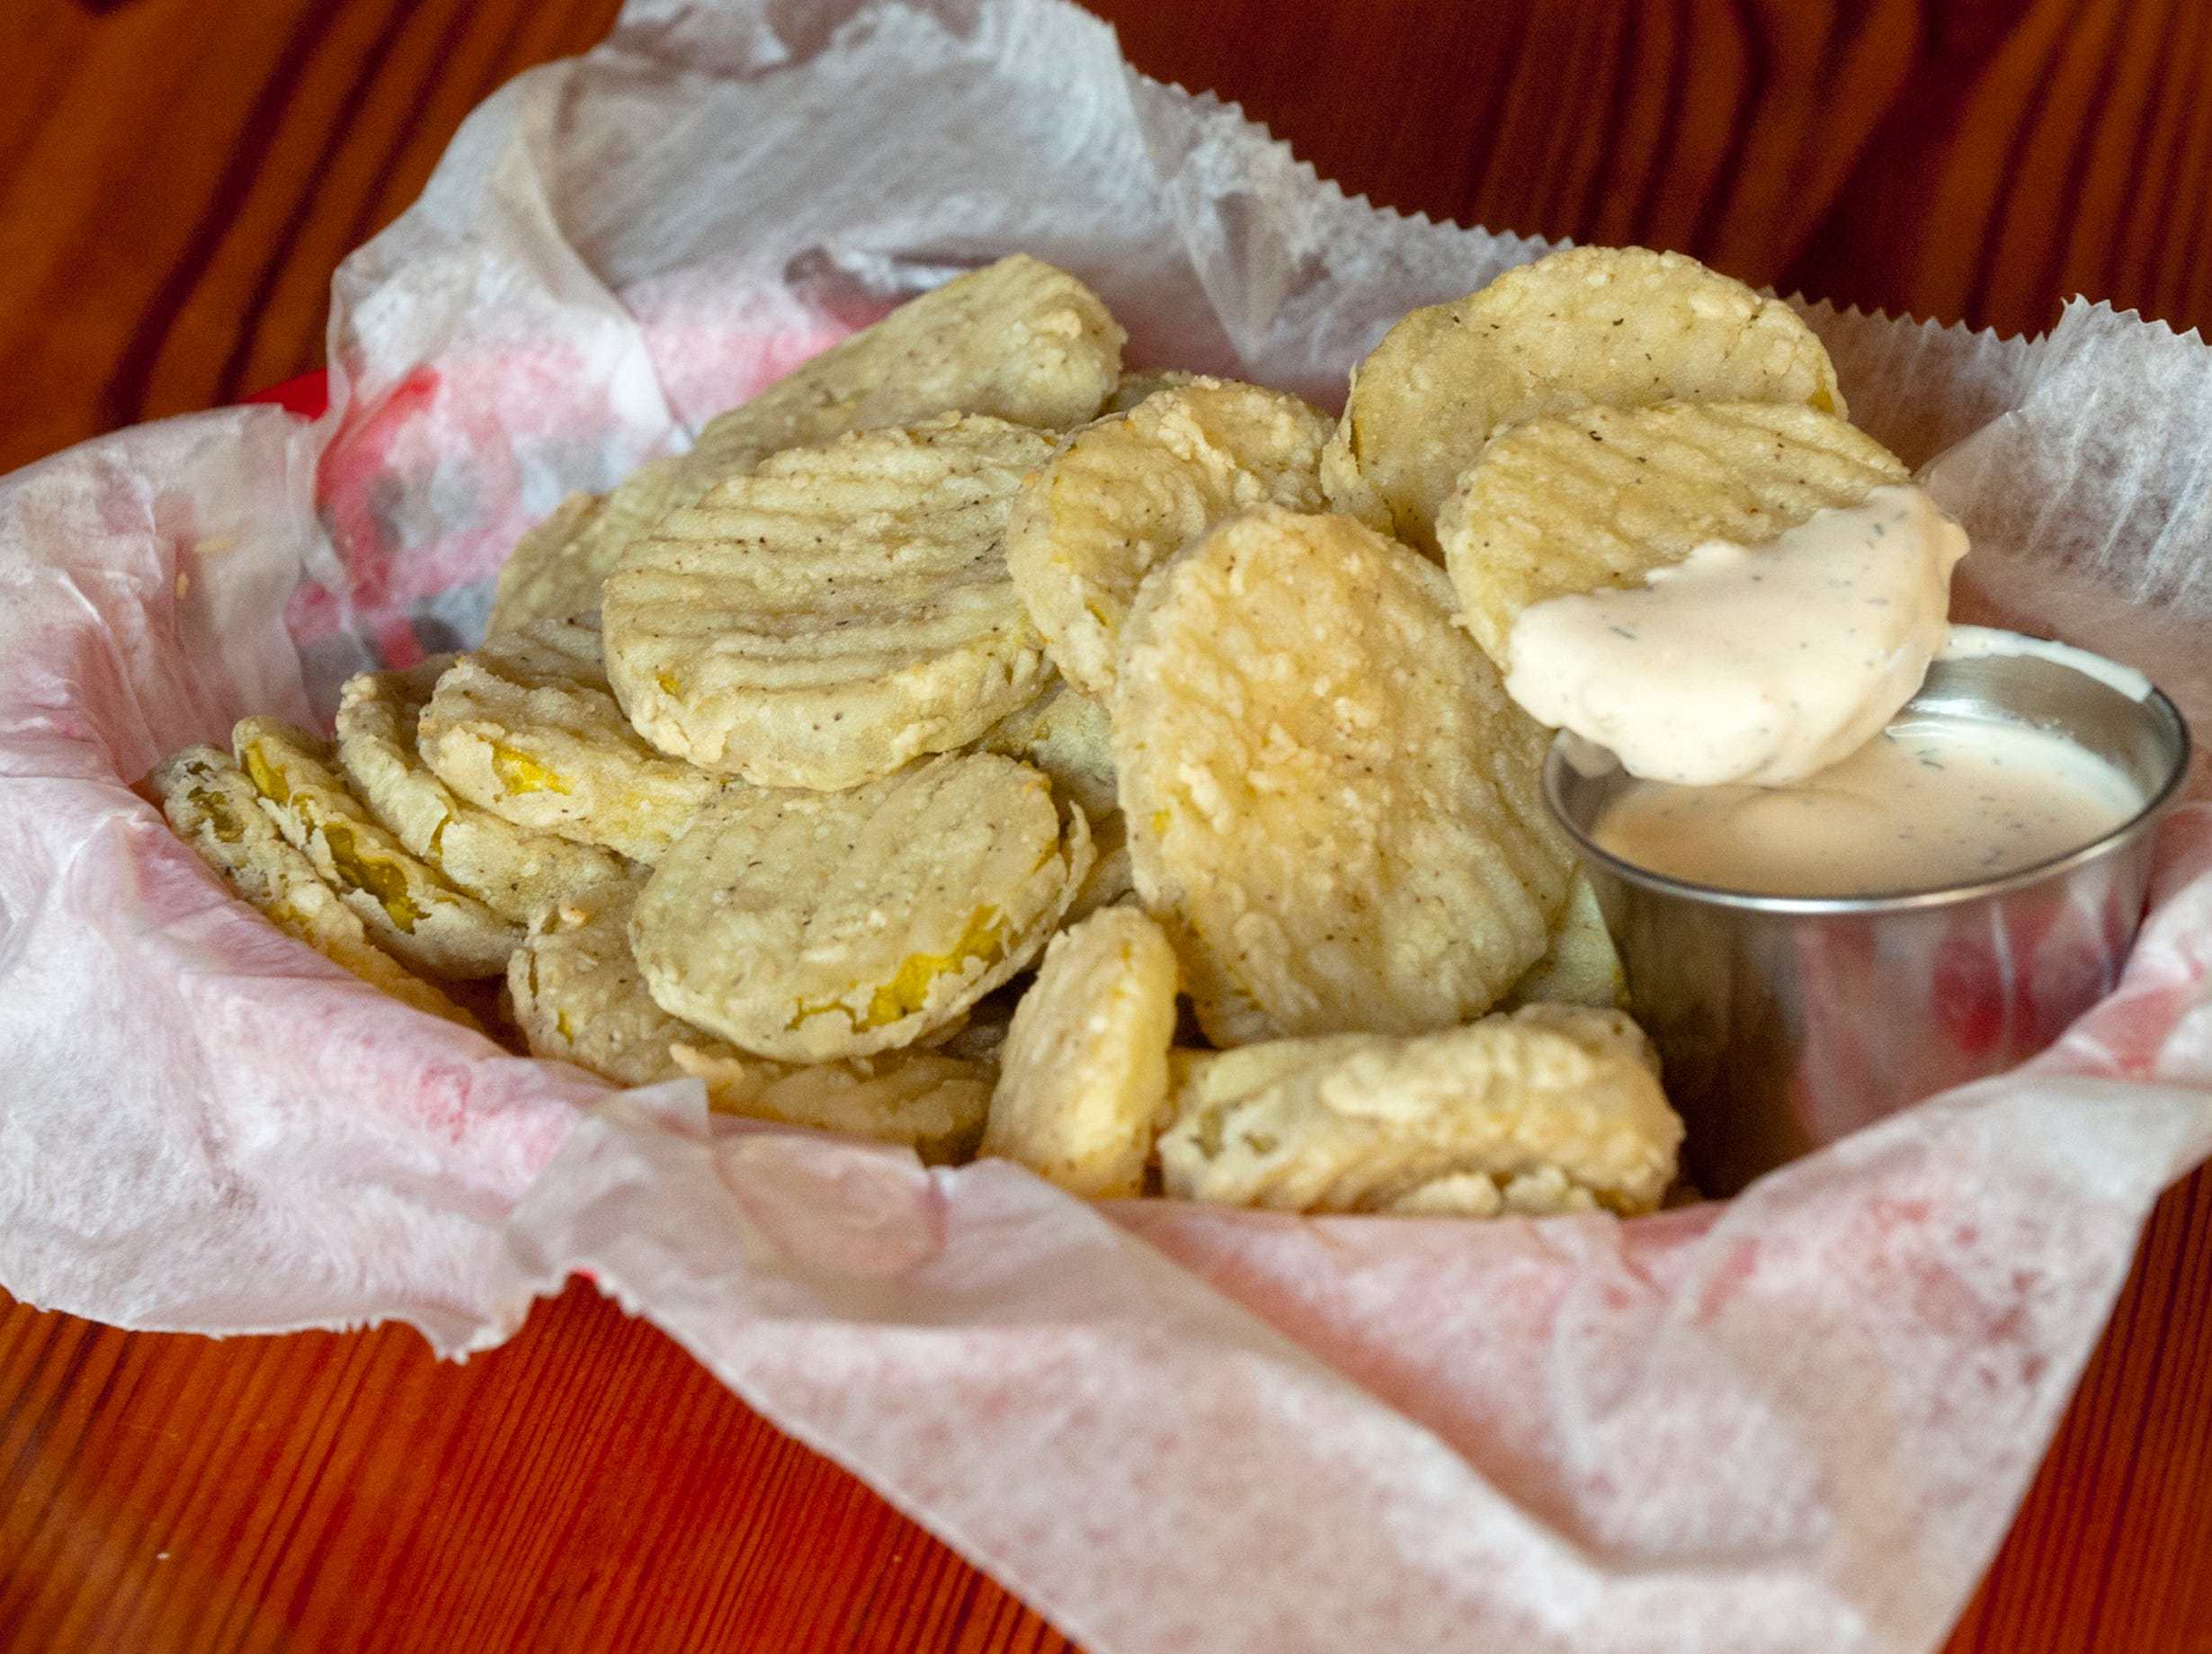 The fried pickles appetizer at the Silver Dollar Bar and Restaurant is served with arbol (tree chili) ranch dip.